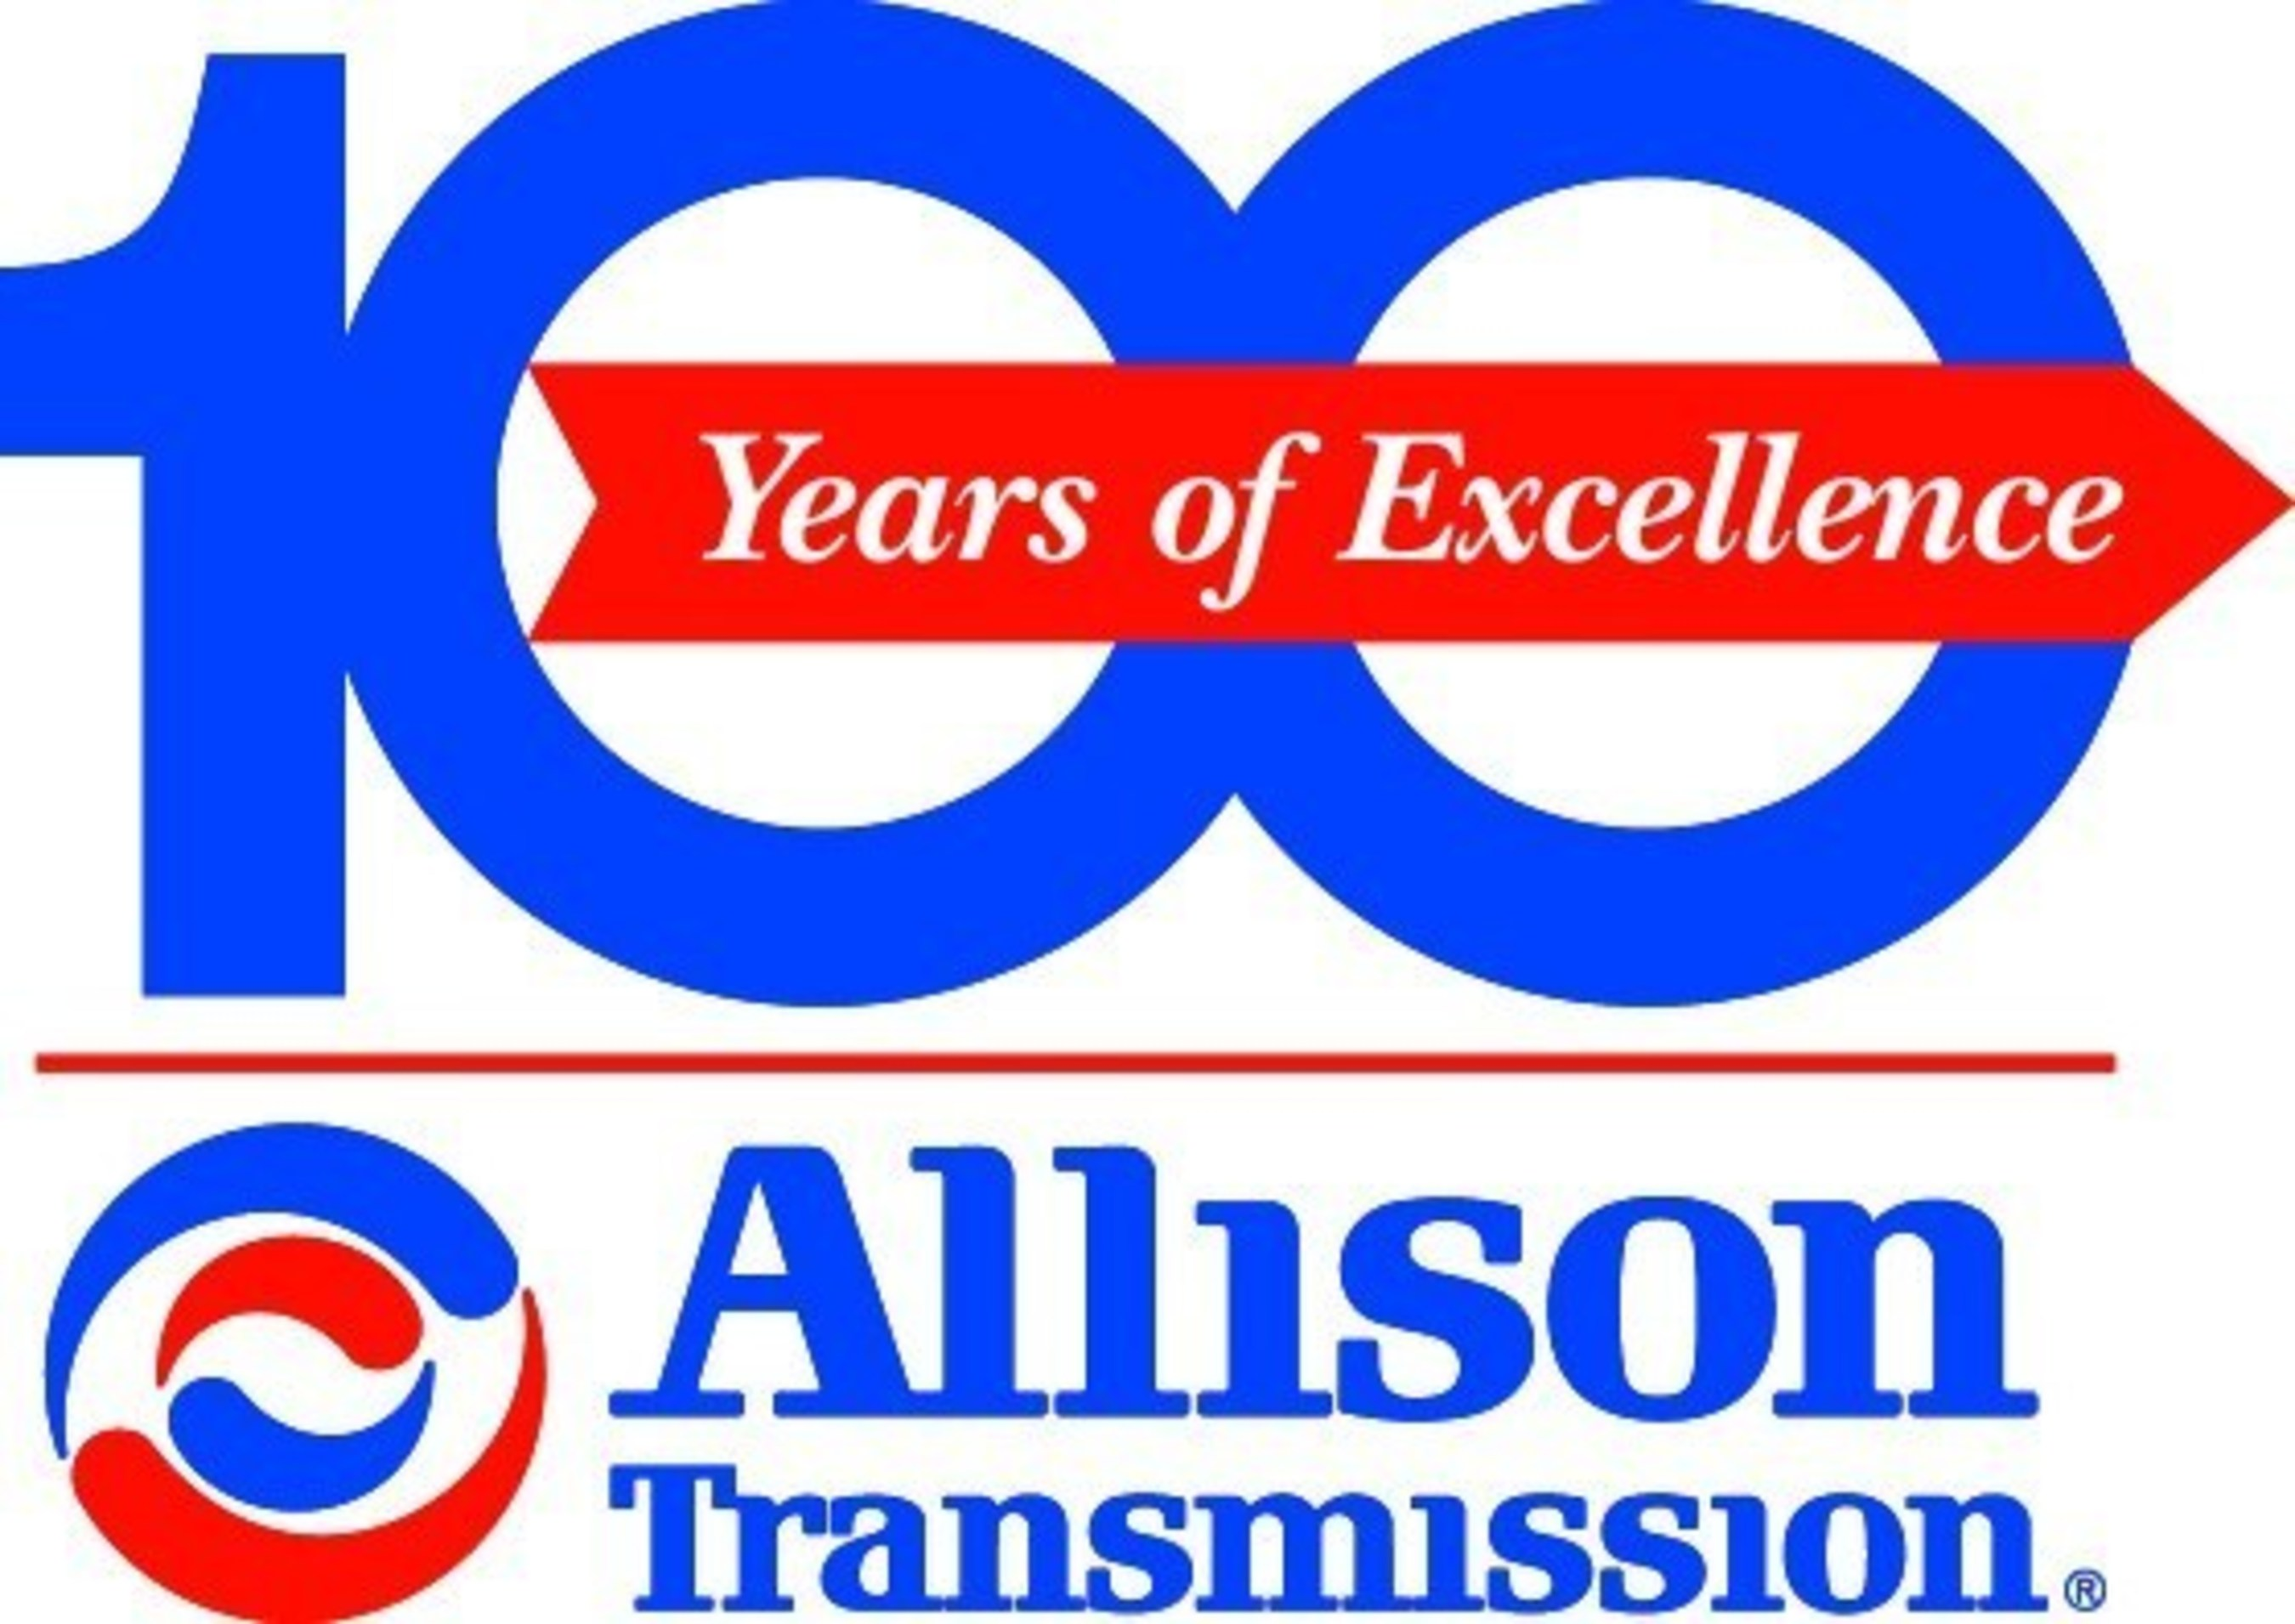 allison transmission announces retirement of senior vice president rh prnewswire com allison transmission logo vector Duramax Allison Transmission